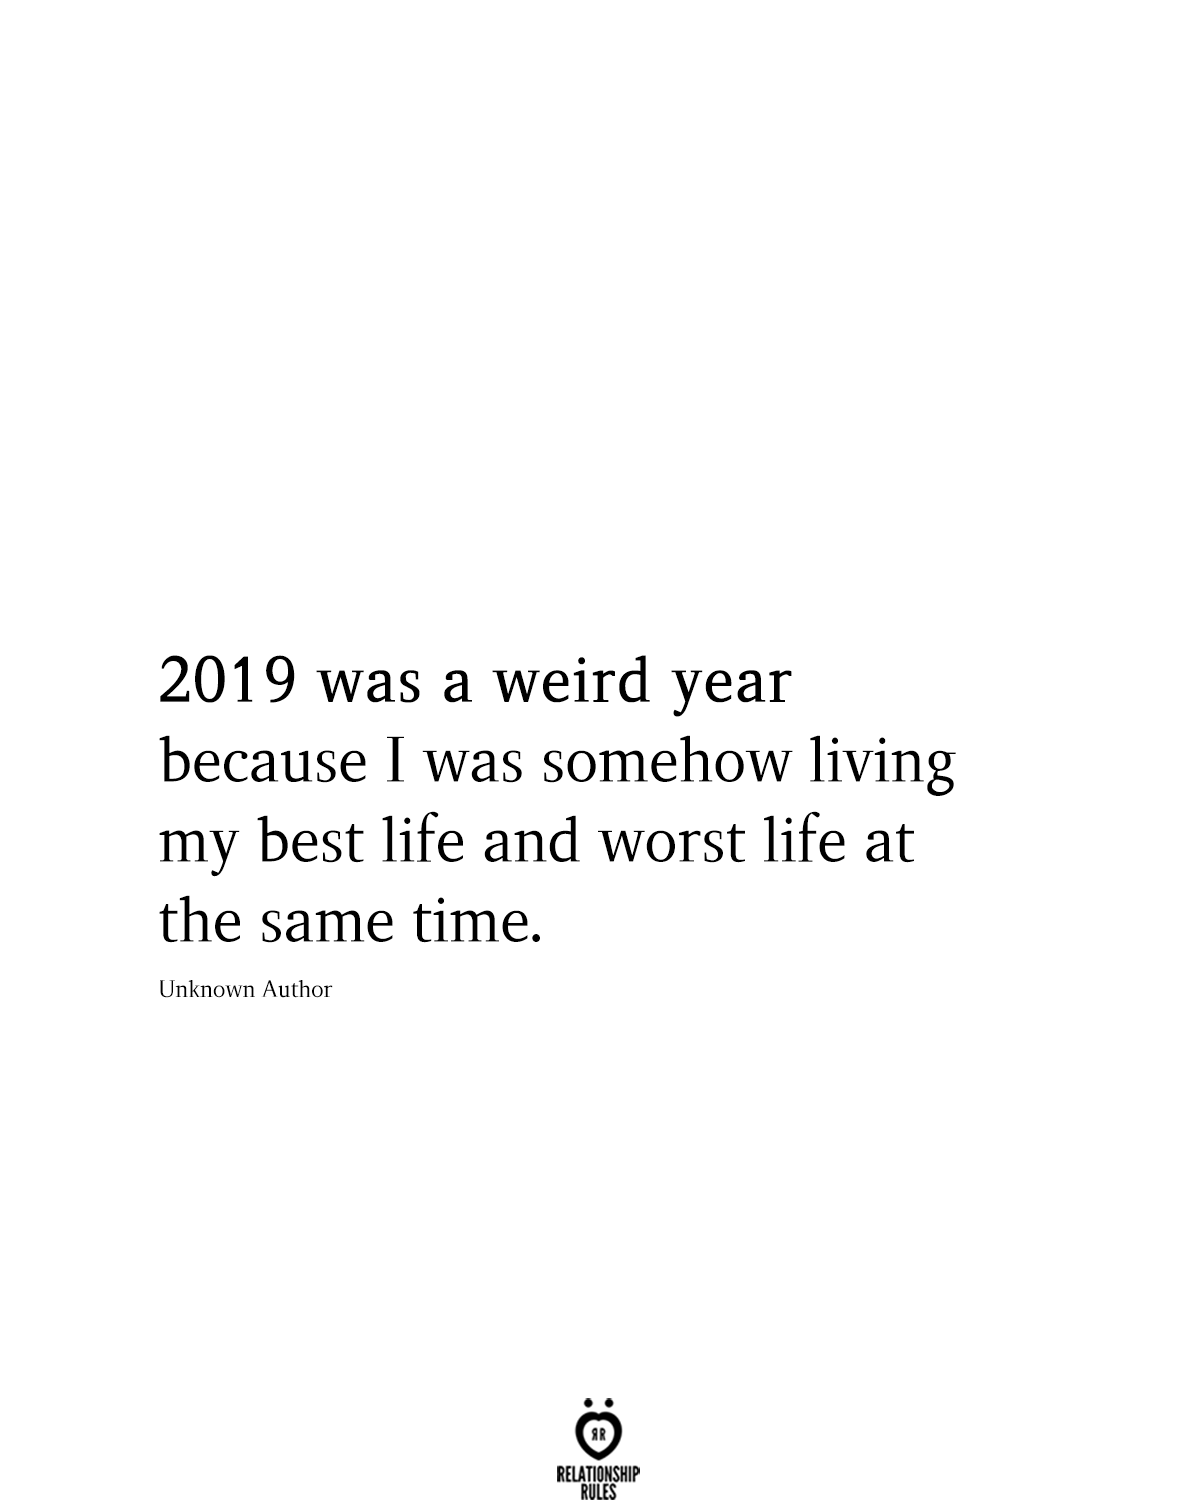 2019 Was A Weird Year Because I Was Somehow Living My Best Life And Worst Life At The Same Time #wordstolivequotes